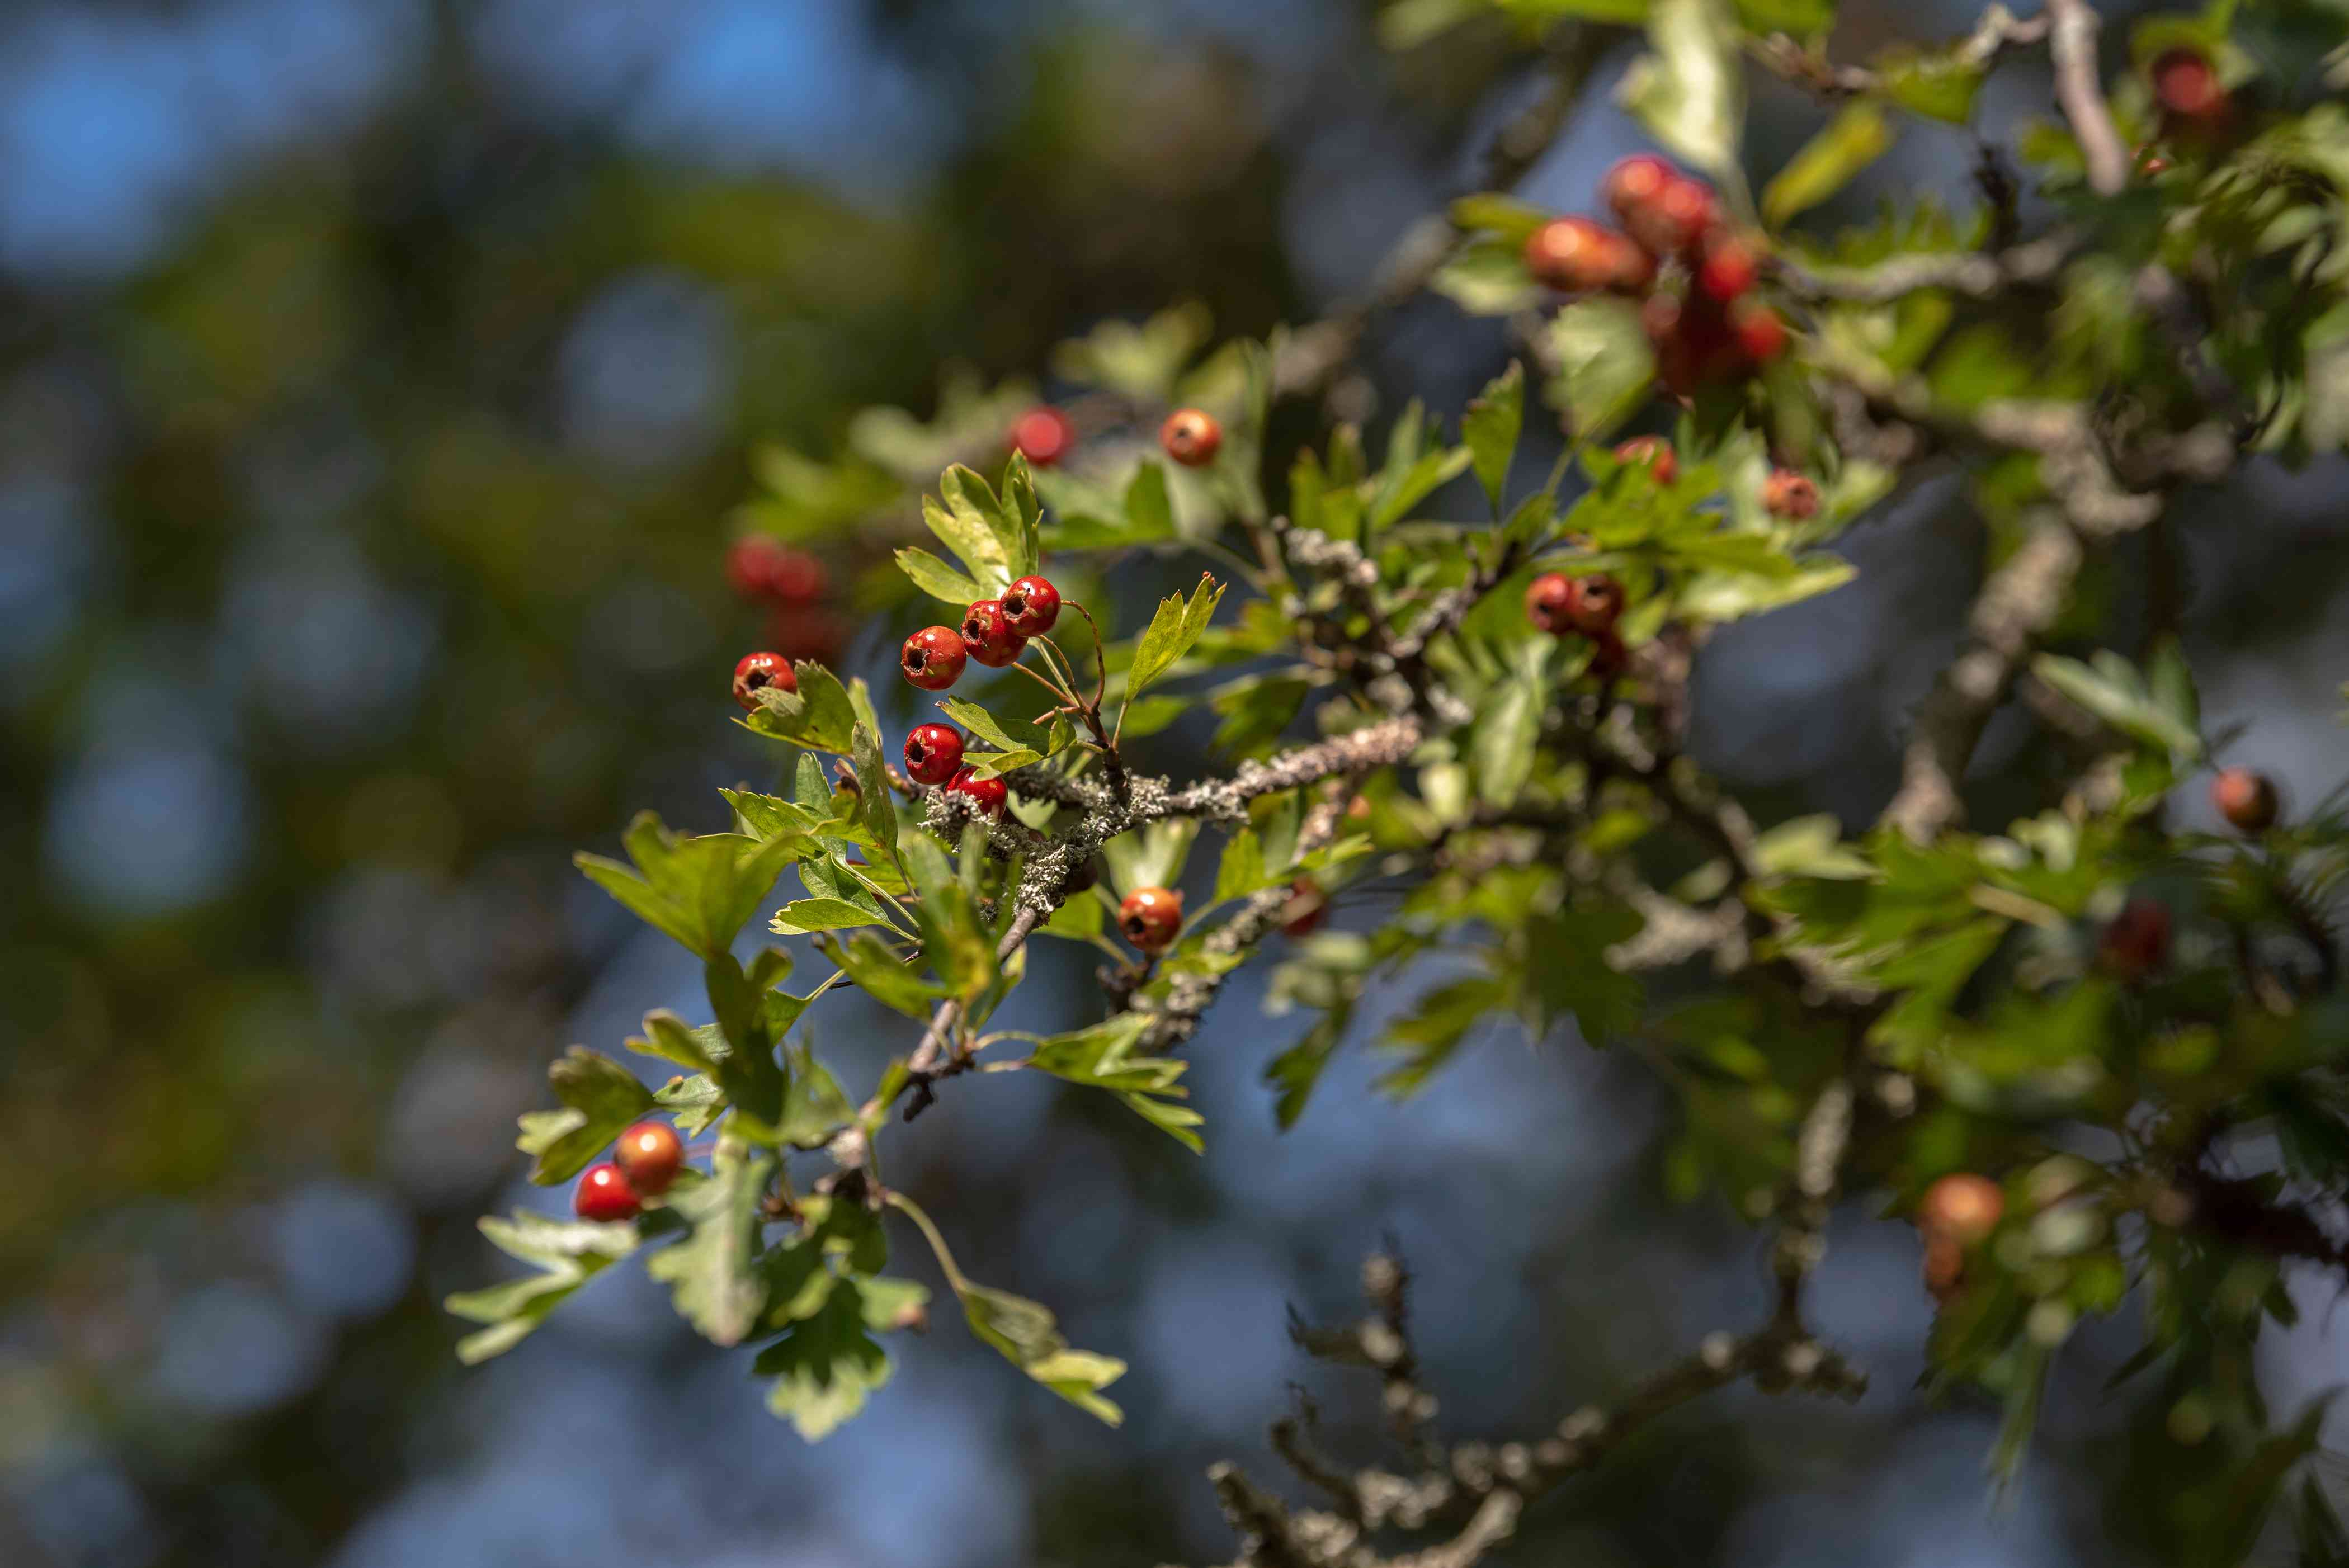 English hawthorn tree branch with small lobed leaves and small red fruit in sunlight